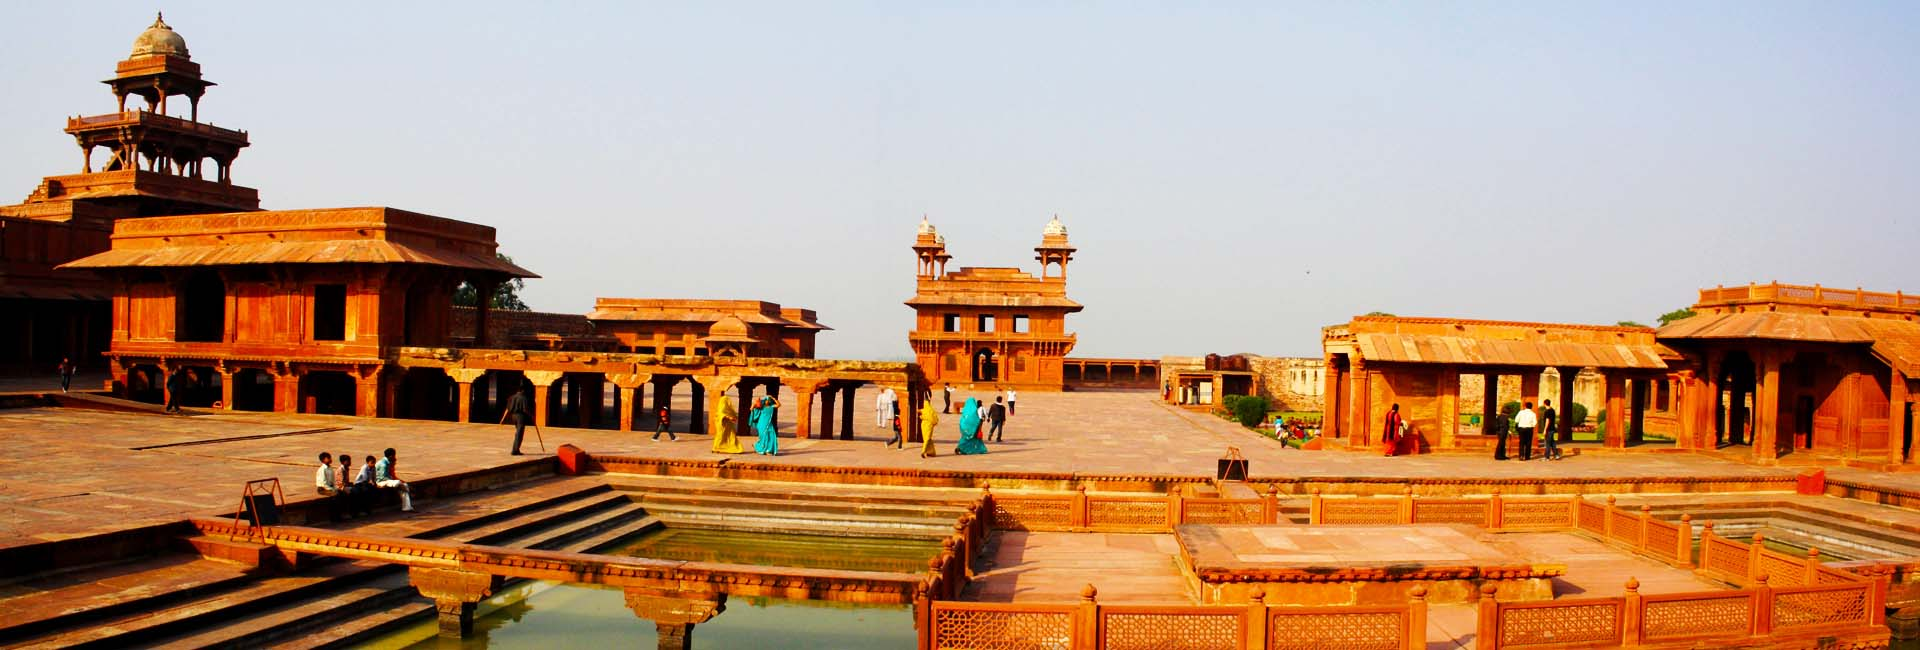 Agra Fatehpur Sikri Packages Banners